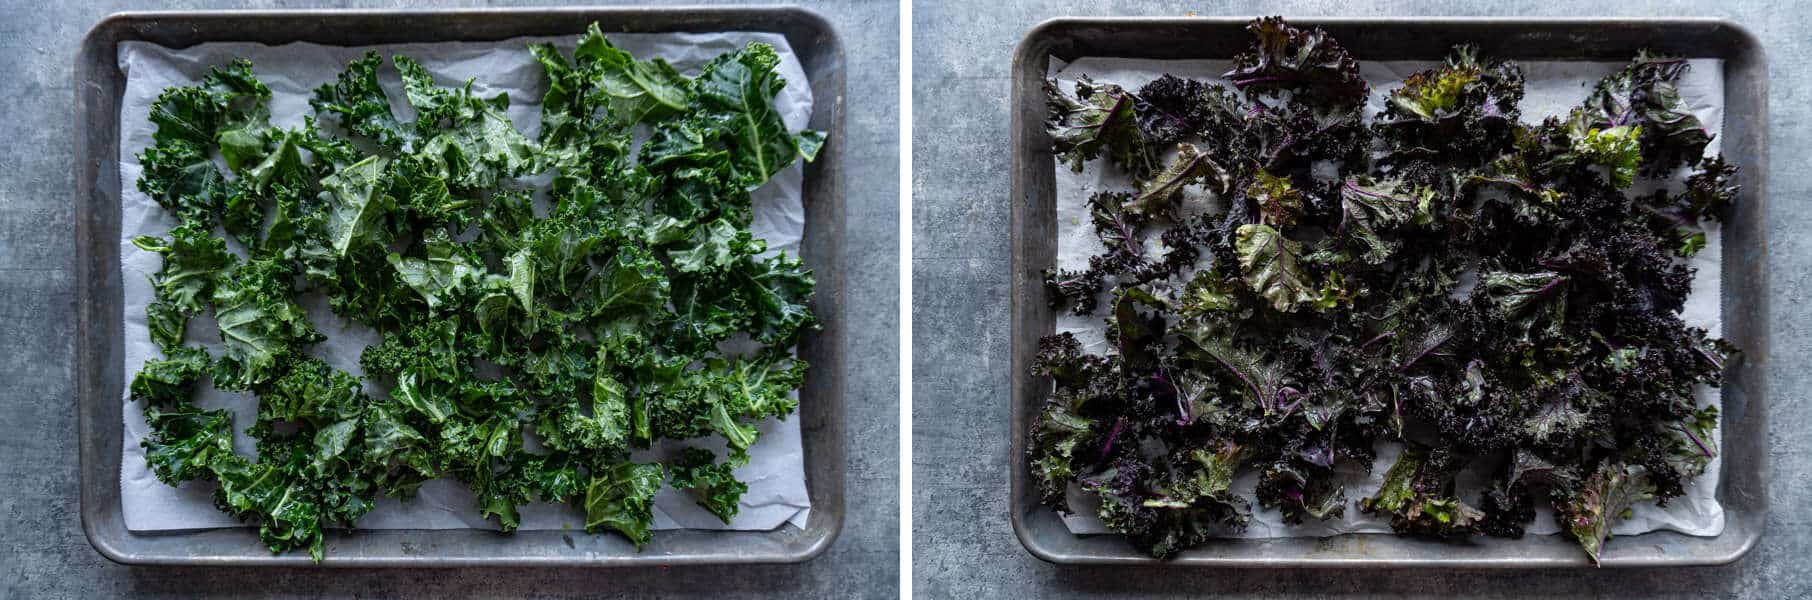 Green and Purple Kale on baking sheet